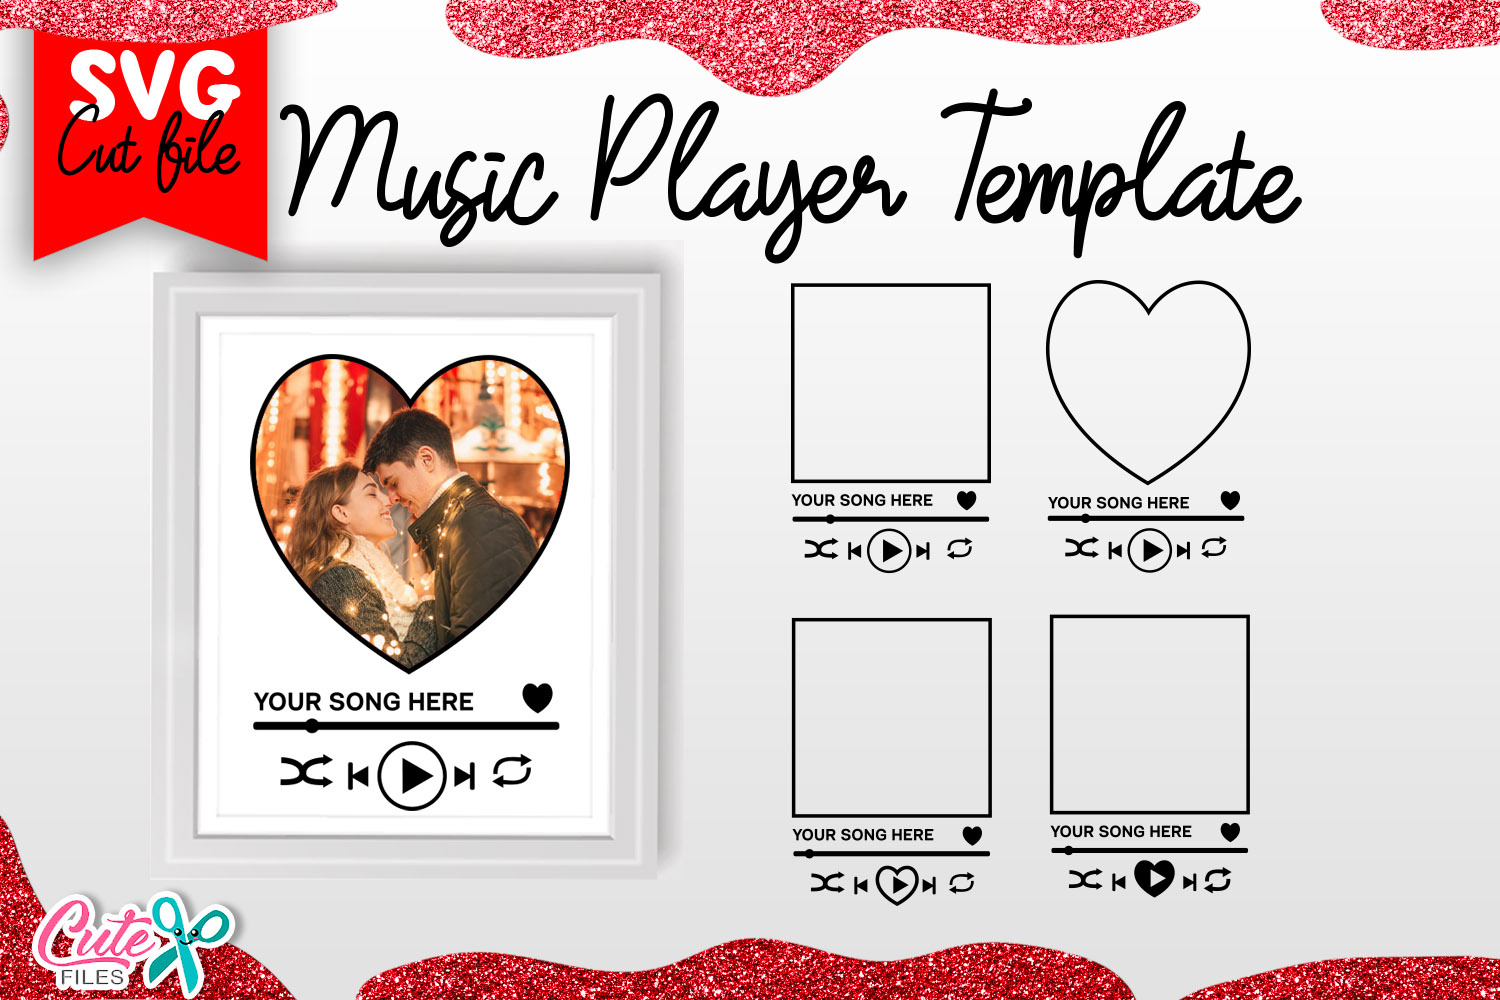 Music Player Template SVG for Valentines SVG File